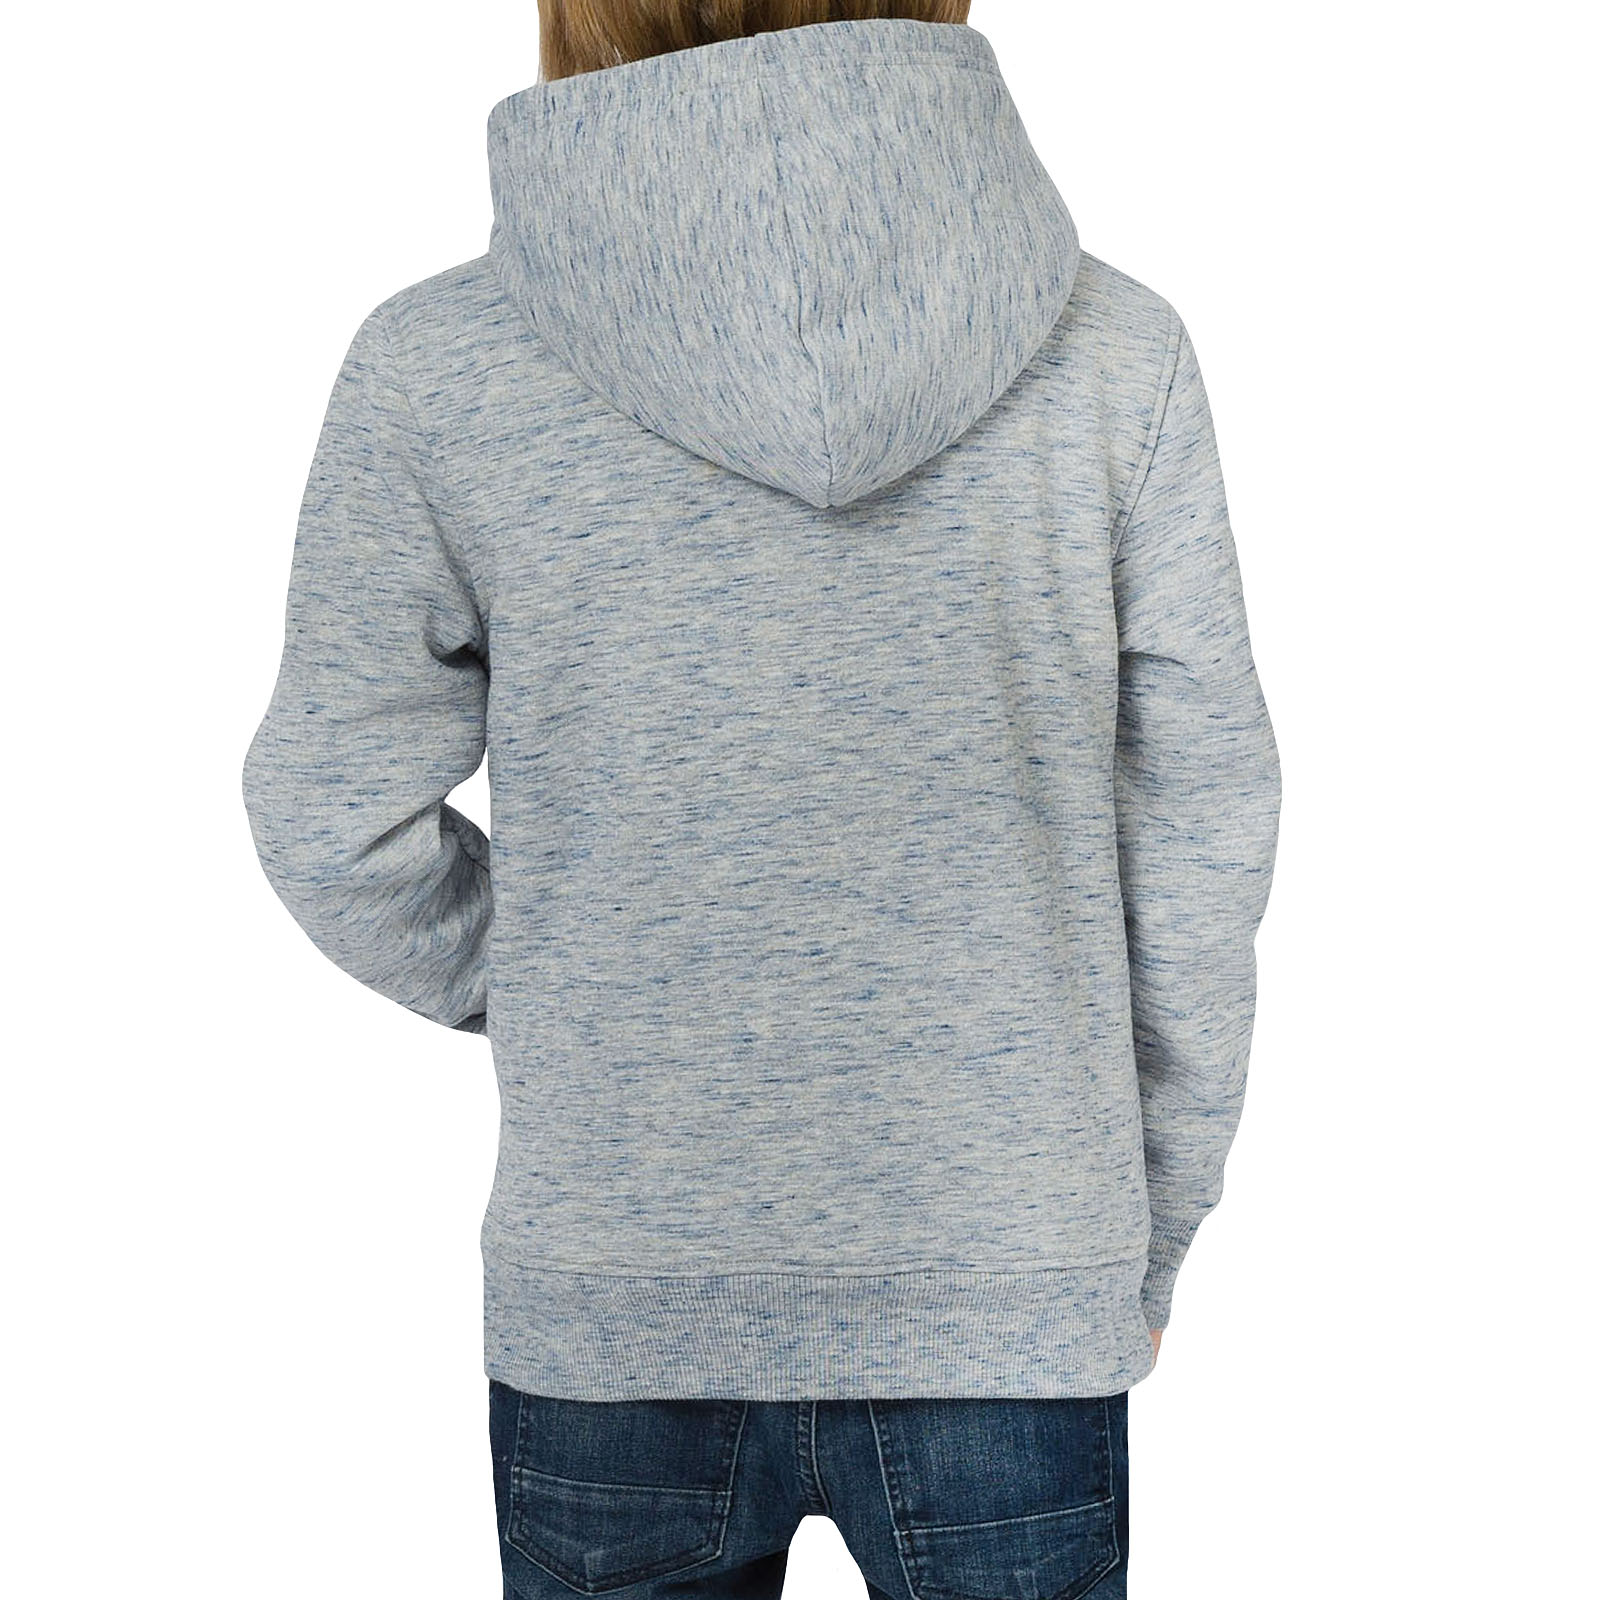 Animal-Boys-Kids-Stanto-Casual-Long-Sleeve-Zipped-Hooded-Sweatshirt-Jacket-Top thumbnail 3